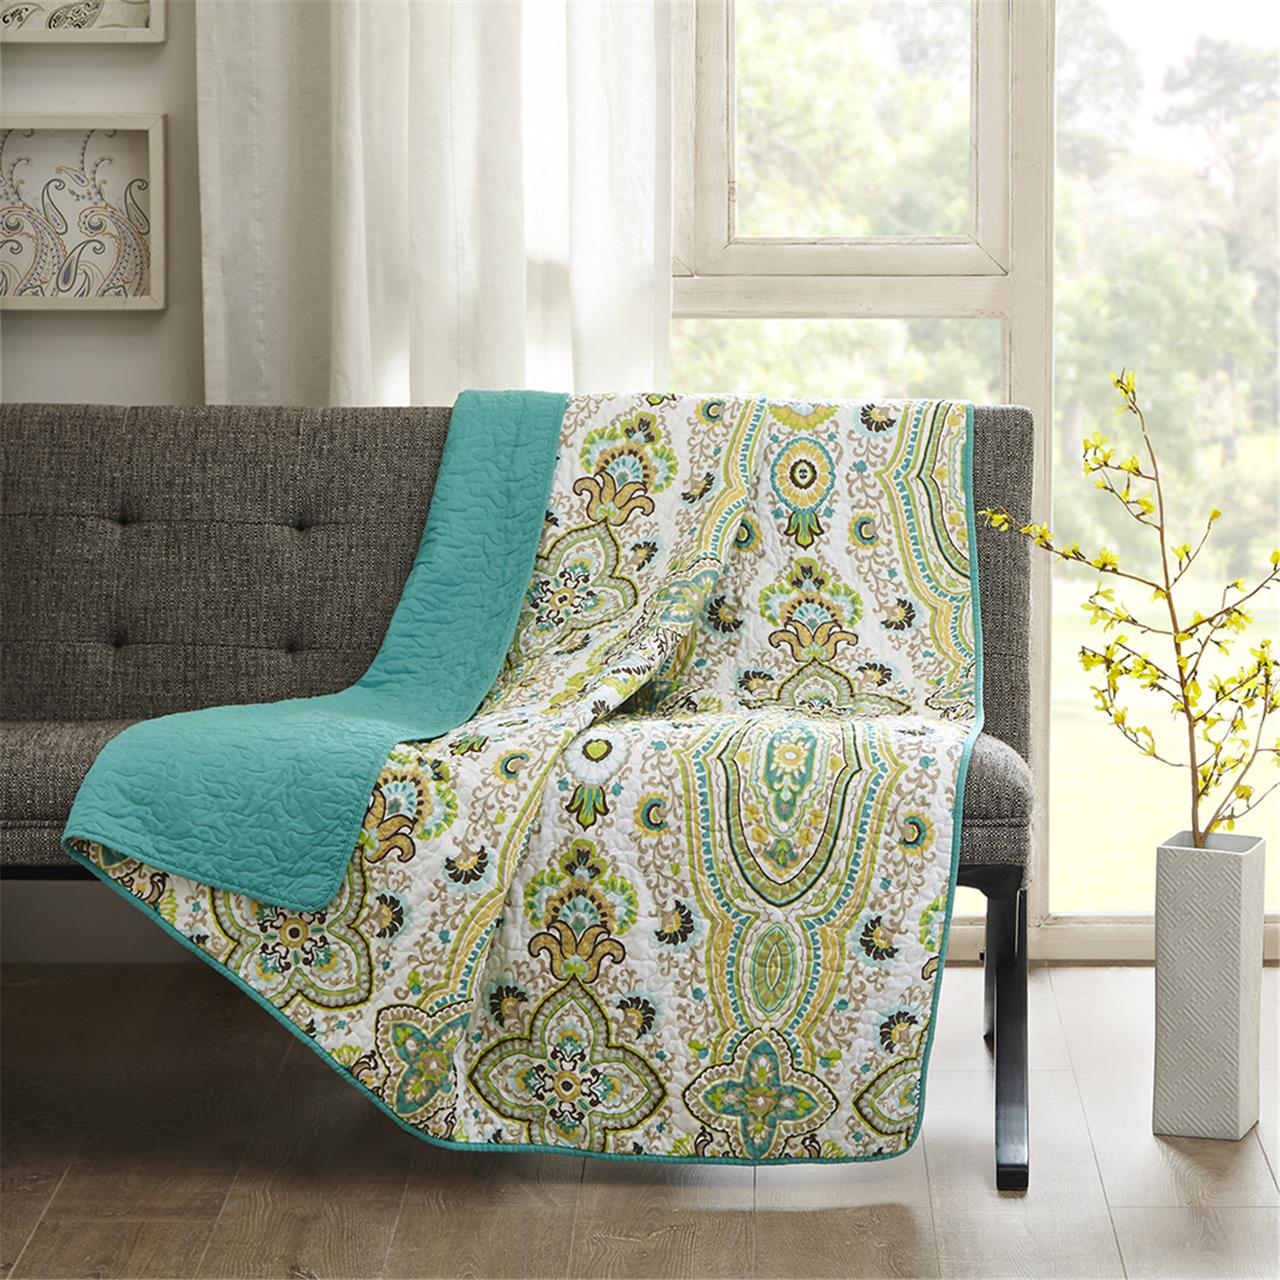 Intelligent Design - Tasia Oversized Quilted Throw - Green - 60x70